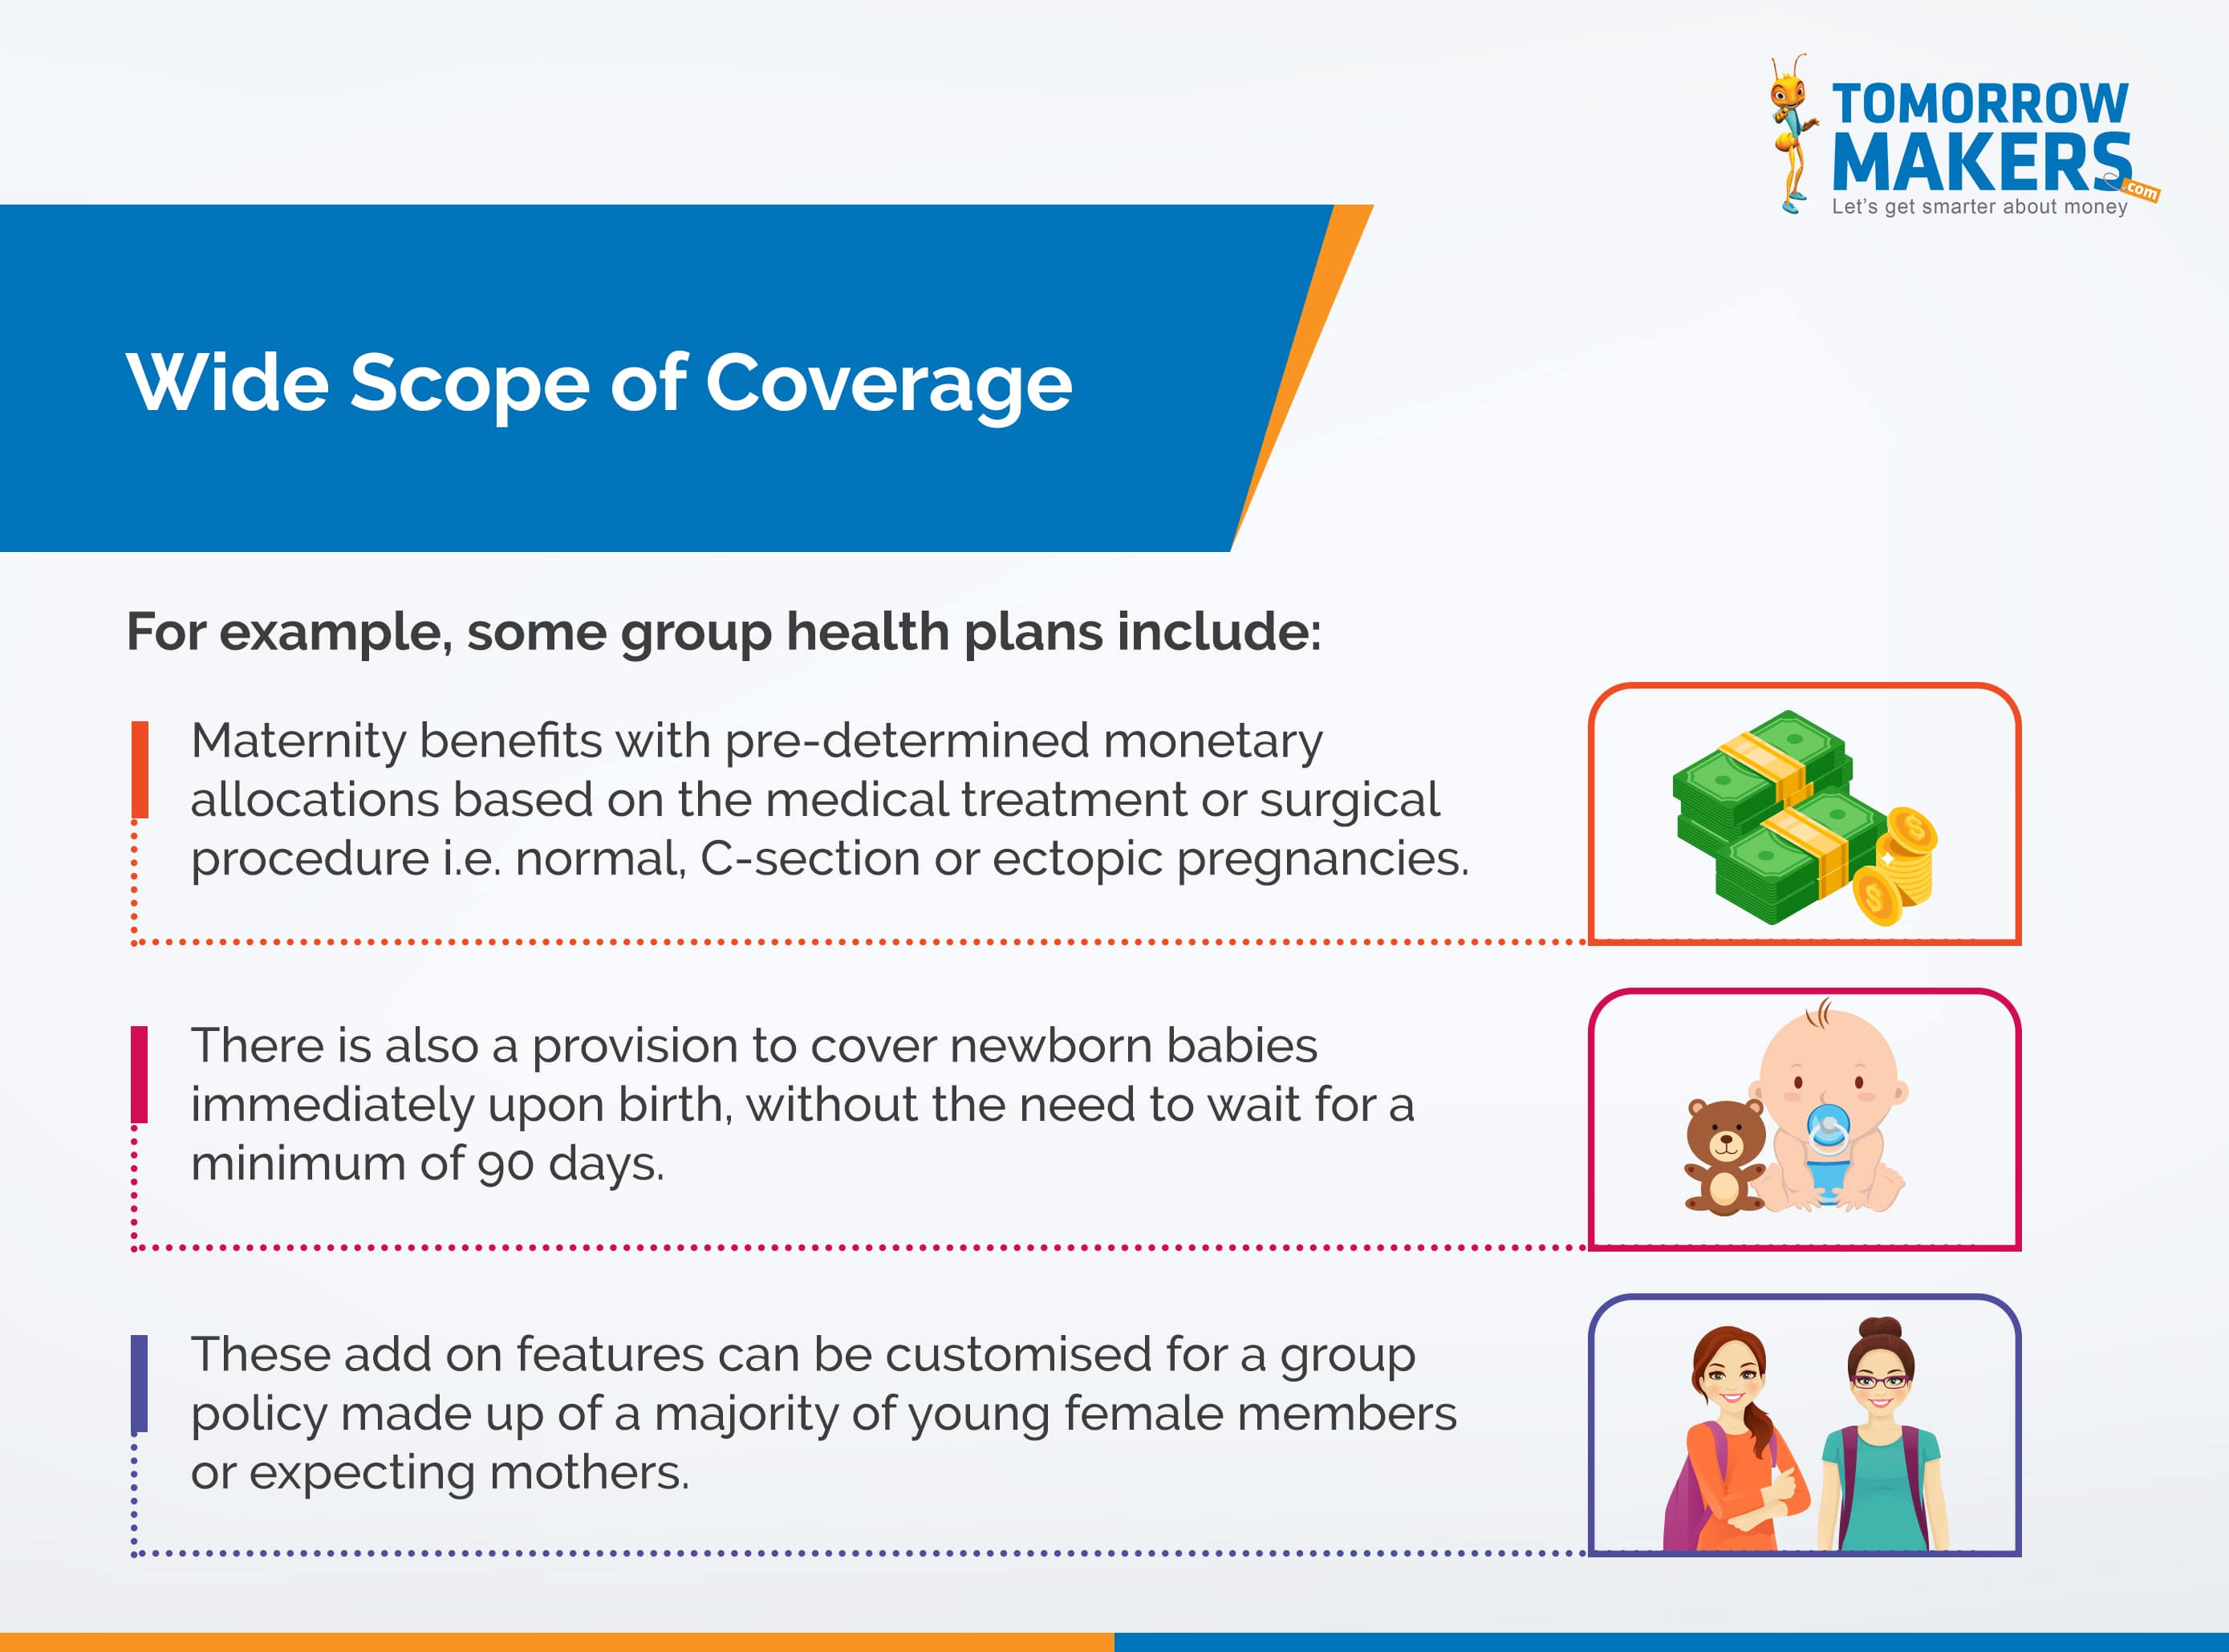 What are the pros and cons of buying a group health cover?